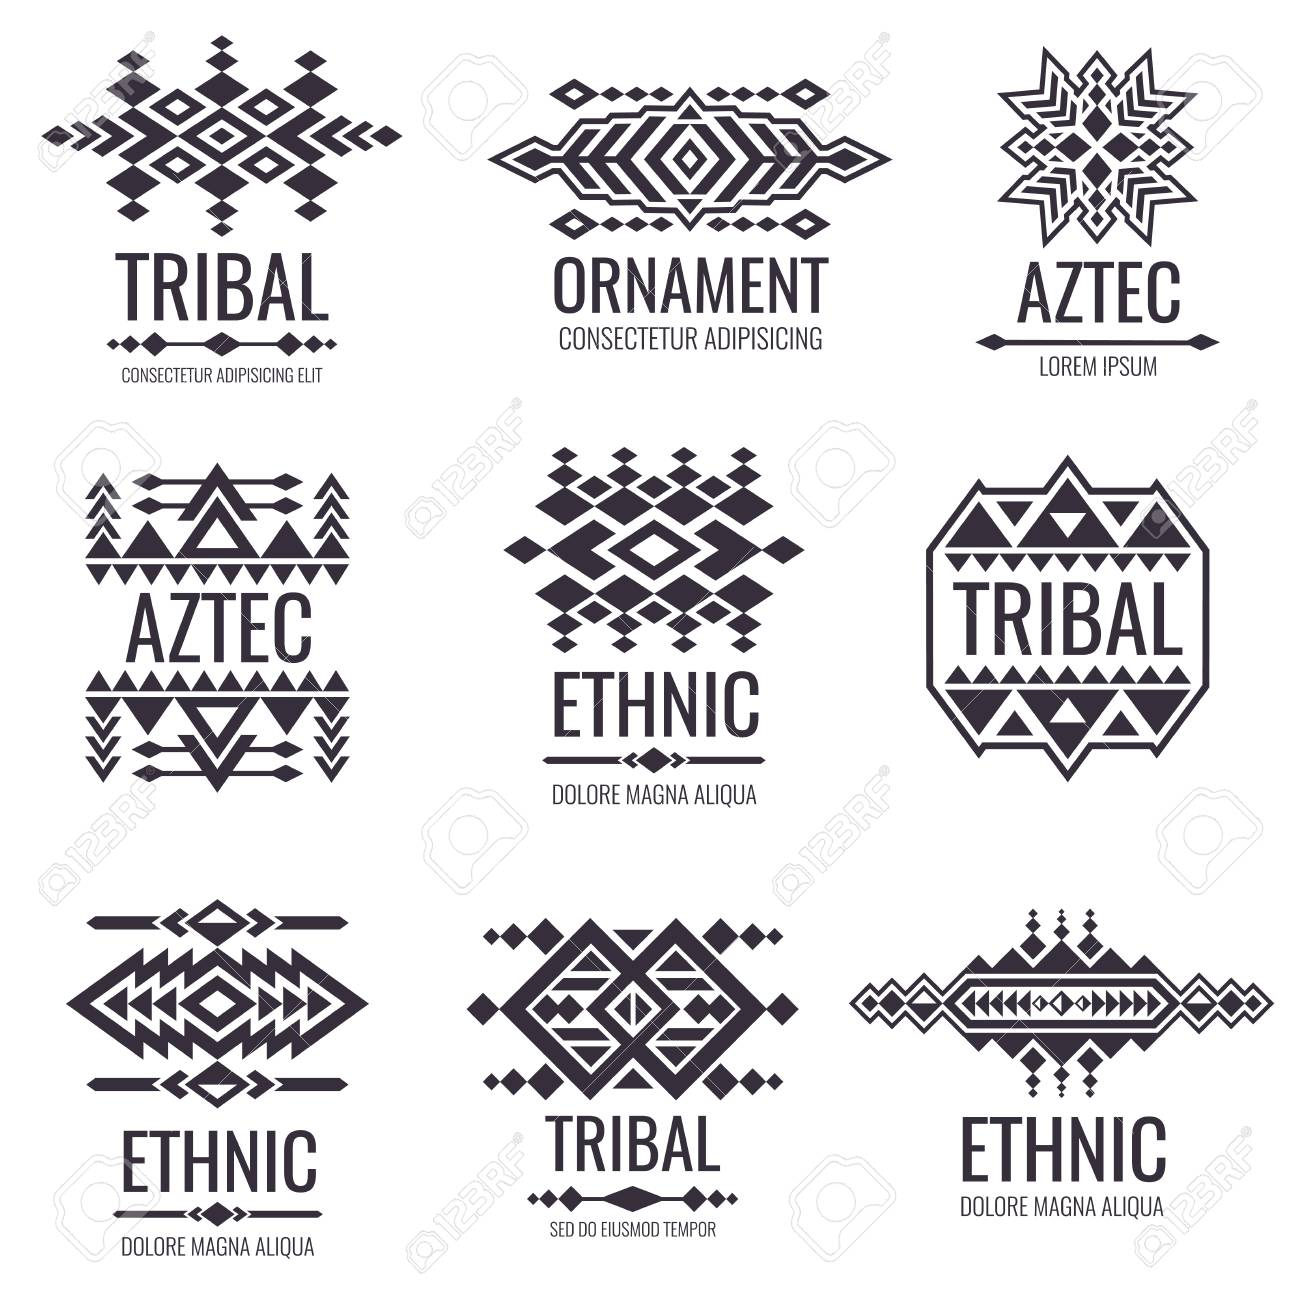 f05e02d57 Tribal aztec vector pattern. Indian graphics for tattoo designs. Indian  aztec tattoo tribal illustration